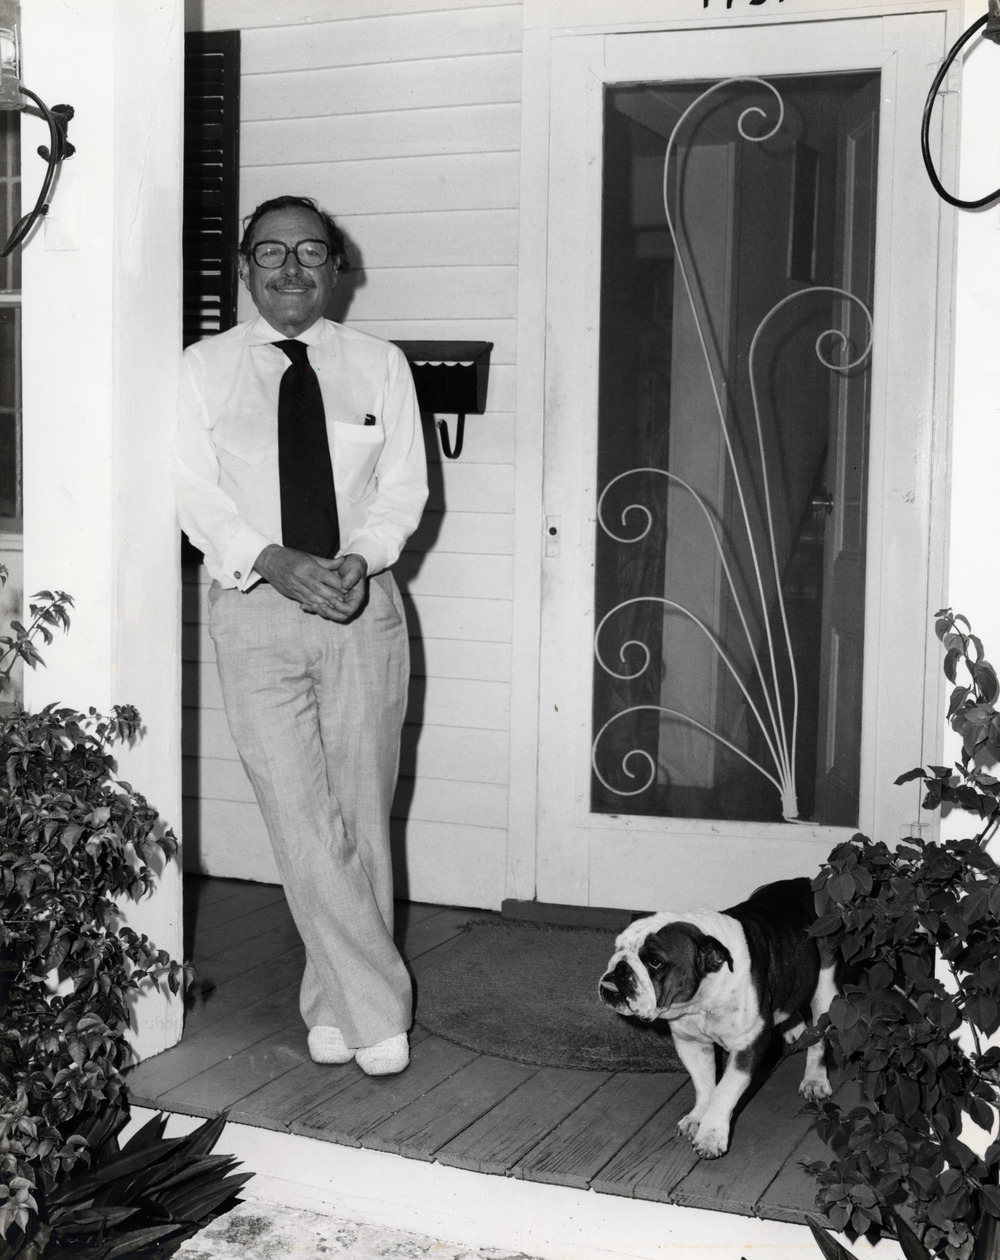 Tennessee Williams on his porch on Duncan Street. He bought the house in 1949 and owned it till his death in 1983. Photo from the Monroe County Library collection.